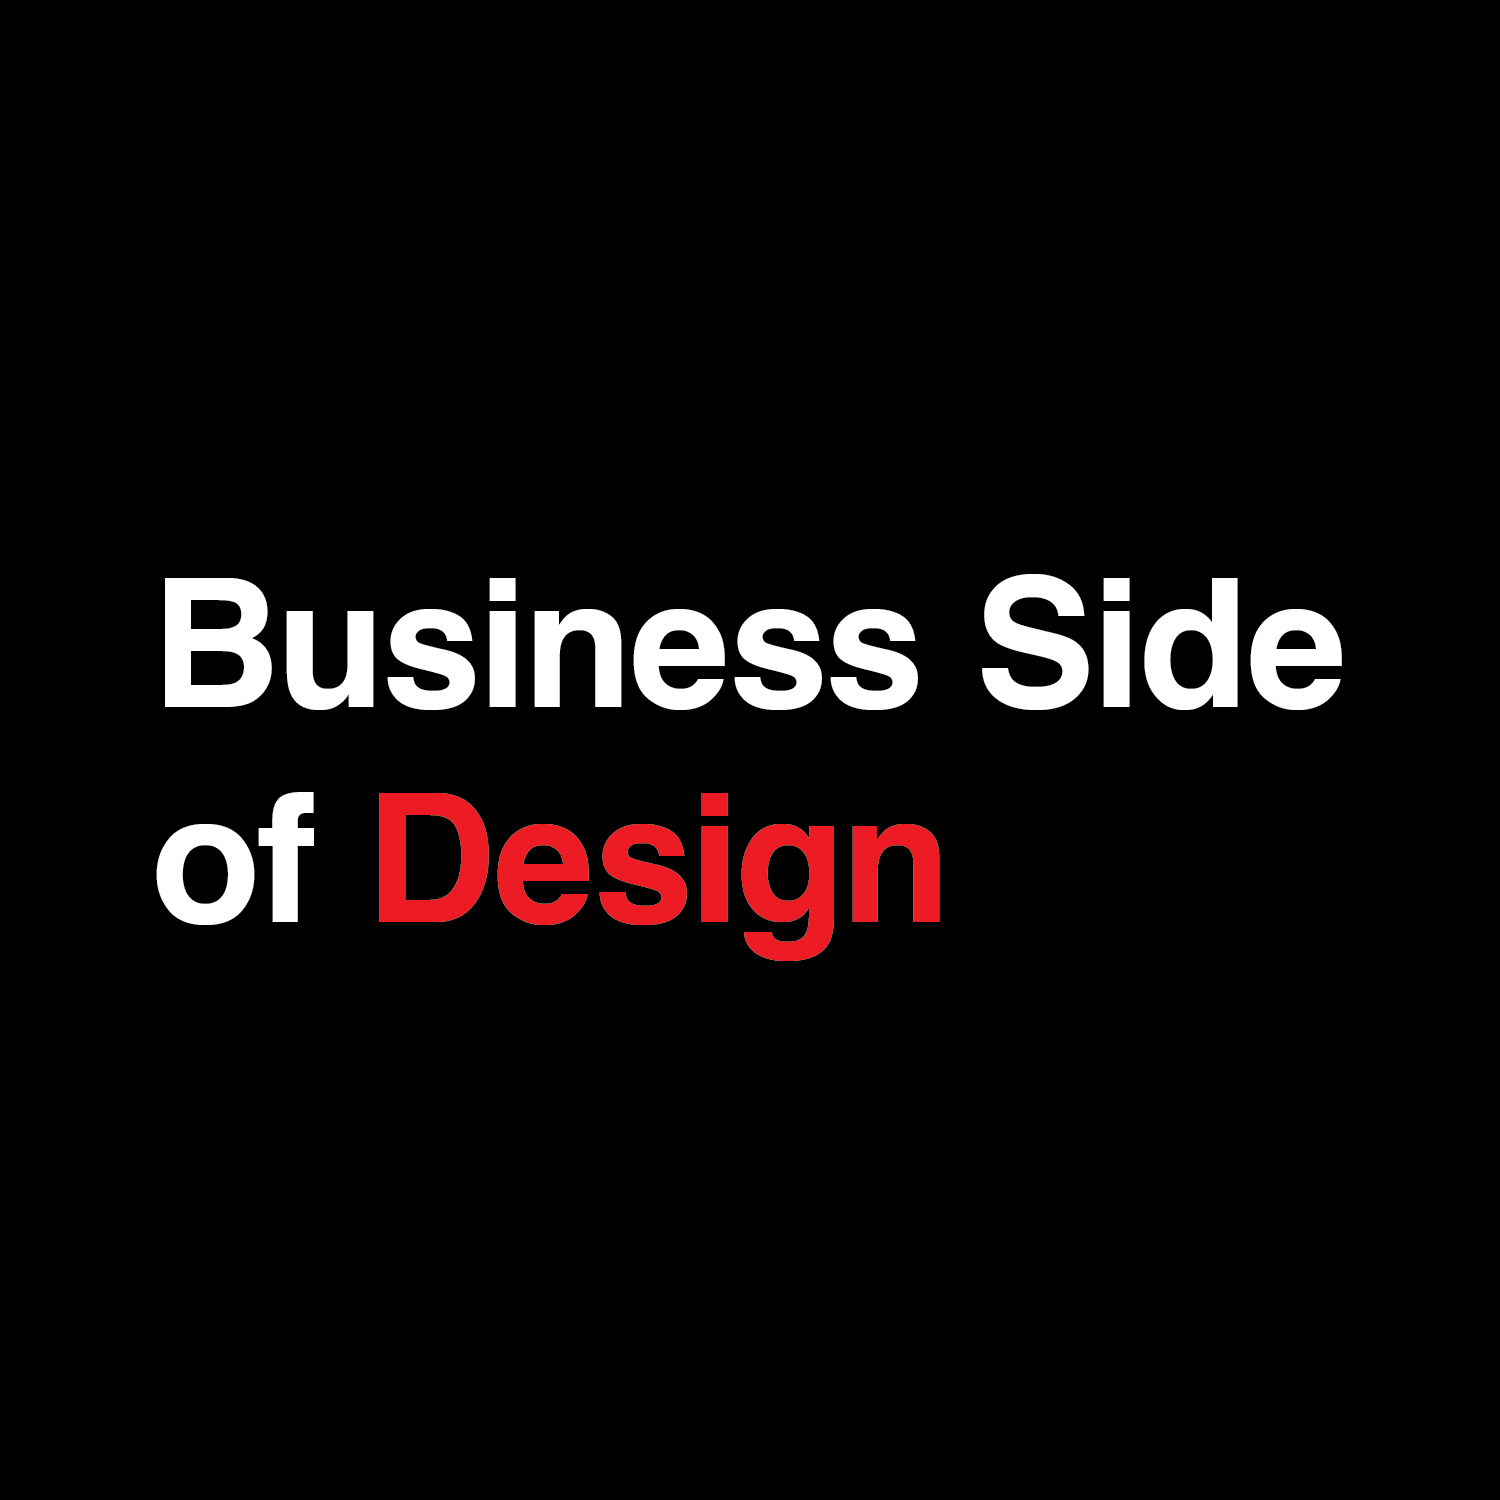 Business Side of Design